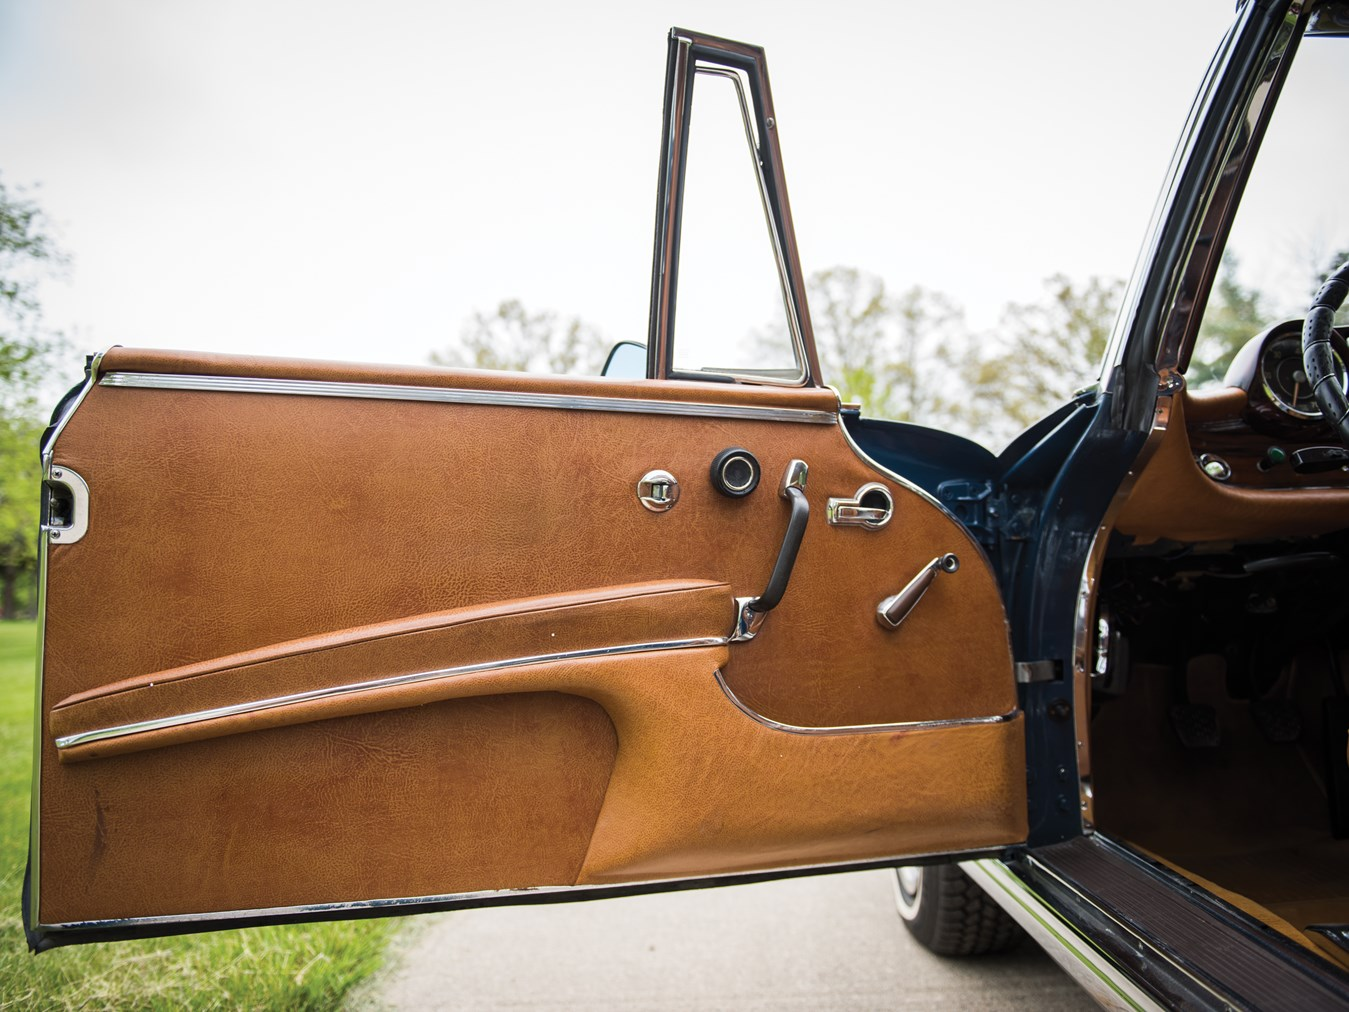 The leather in the door trims is both beautiful and functional.